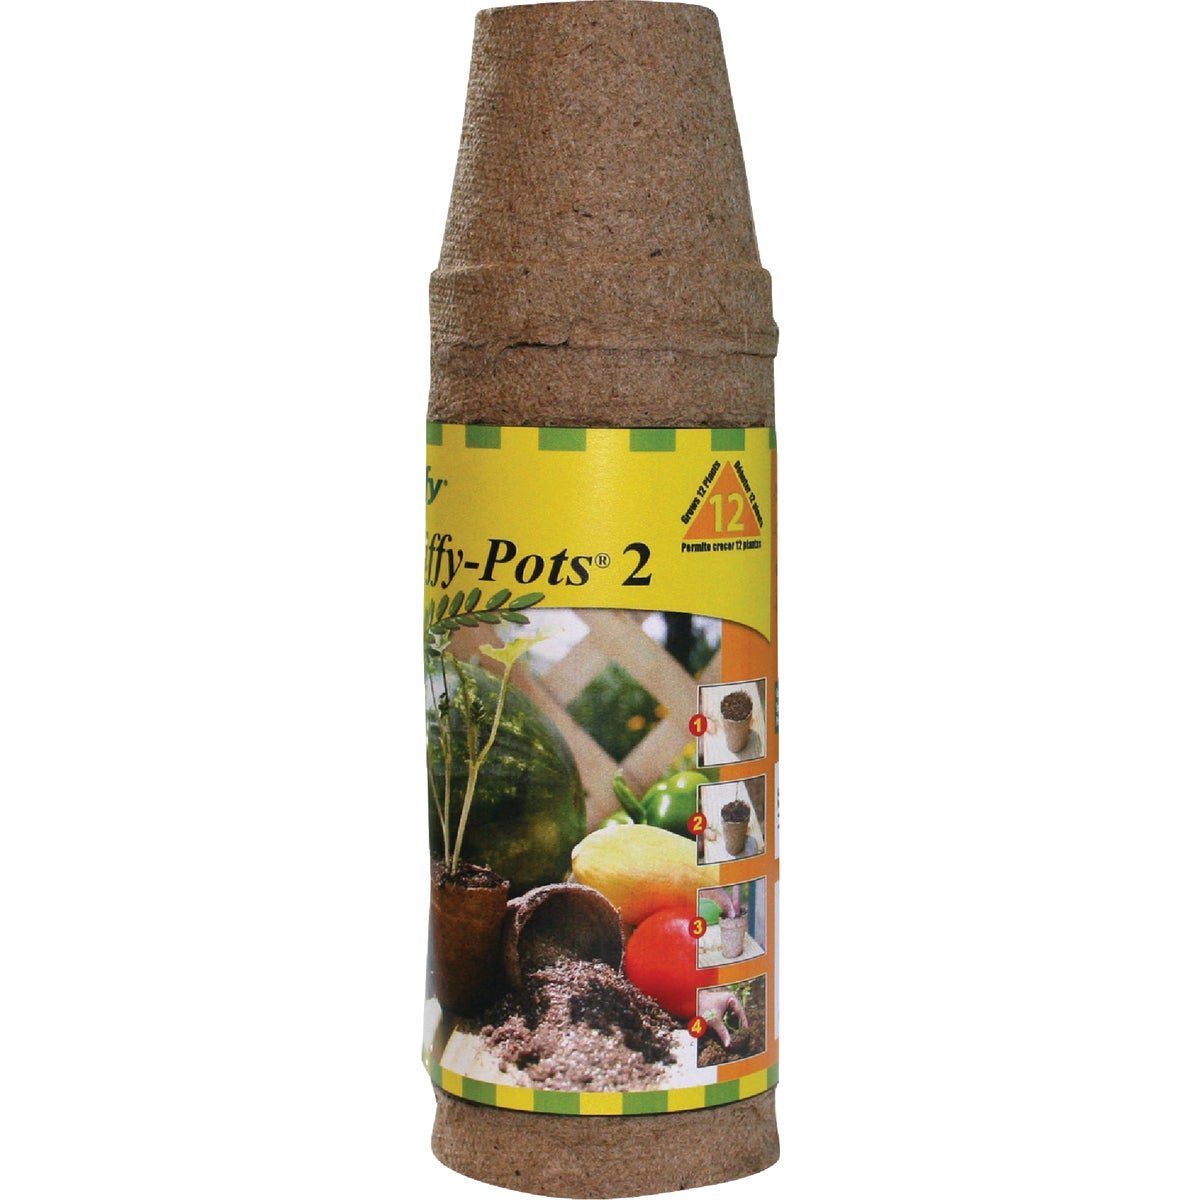 12PK 2.25 ROUND PEAT POT - JP212 by Plantation Products